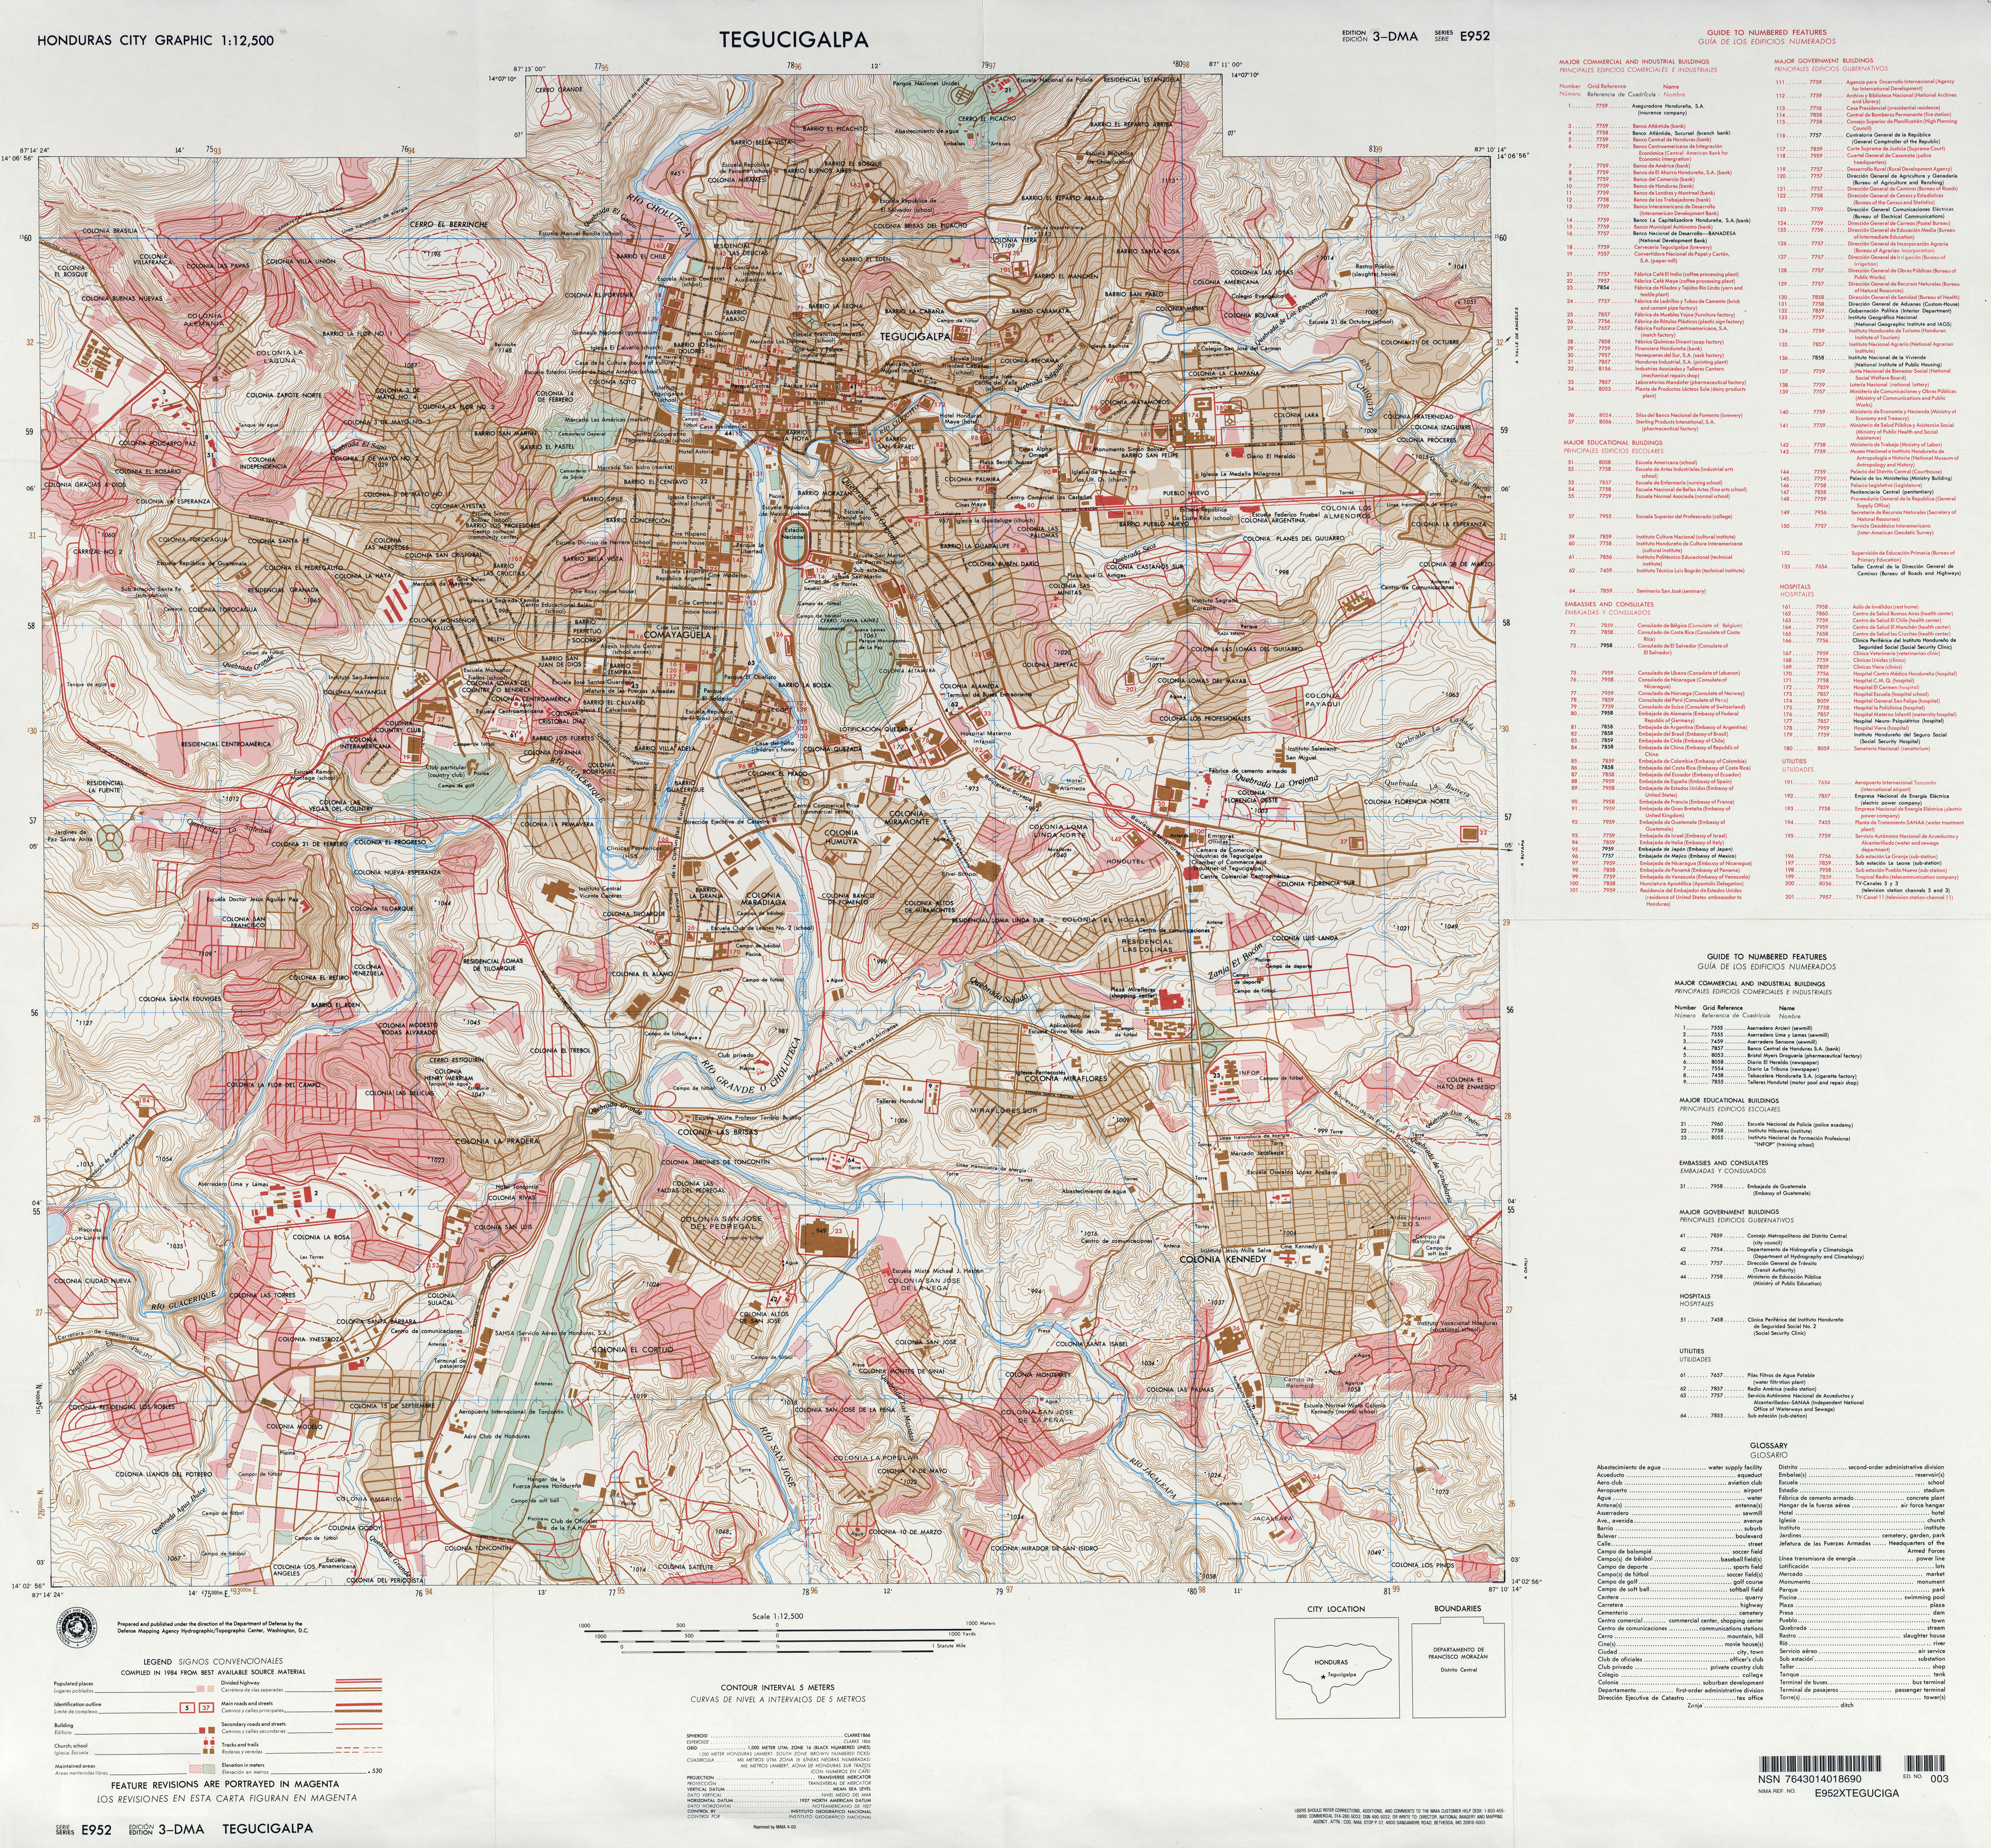 Honduras Topographic Map.Honduras Maps Perry Castaneda Map Collection Ut Library Online